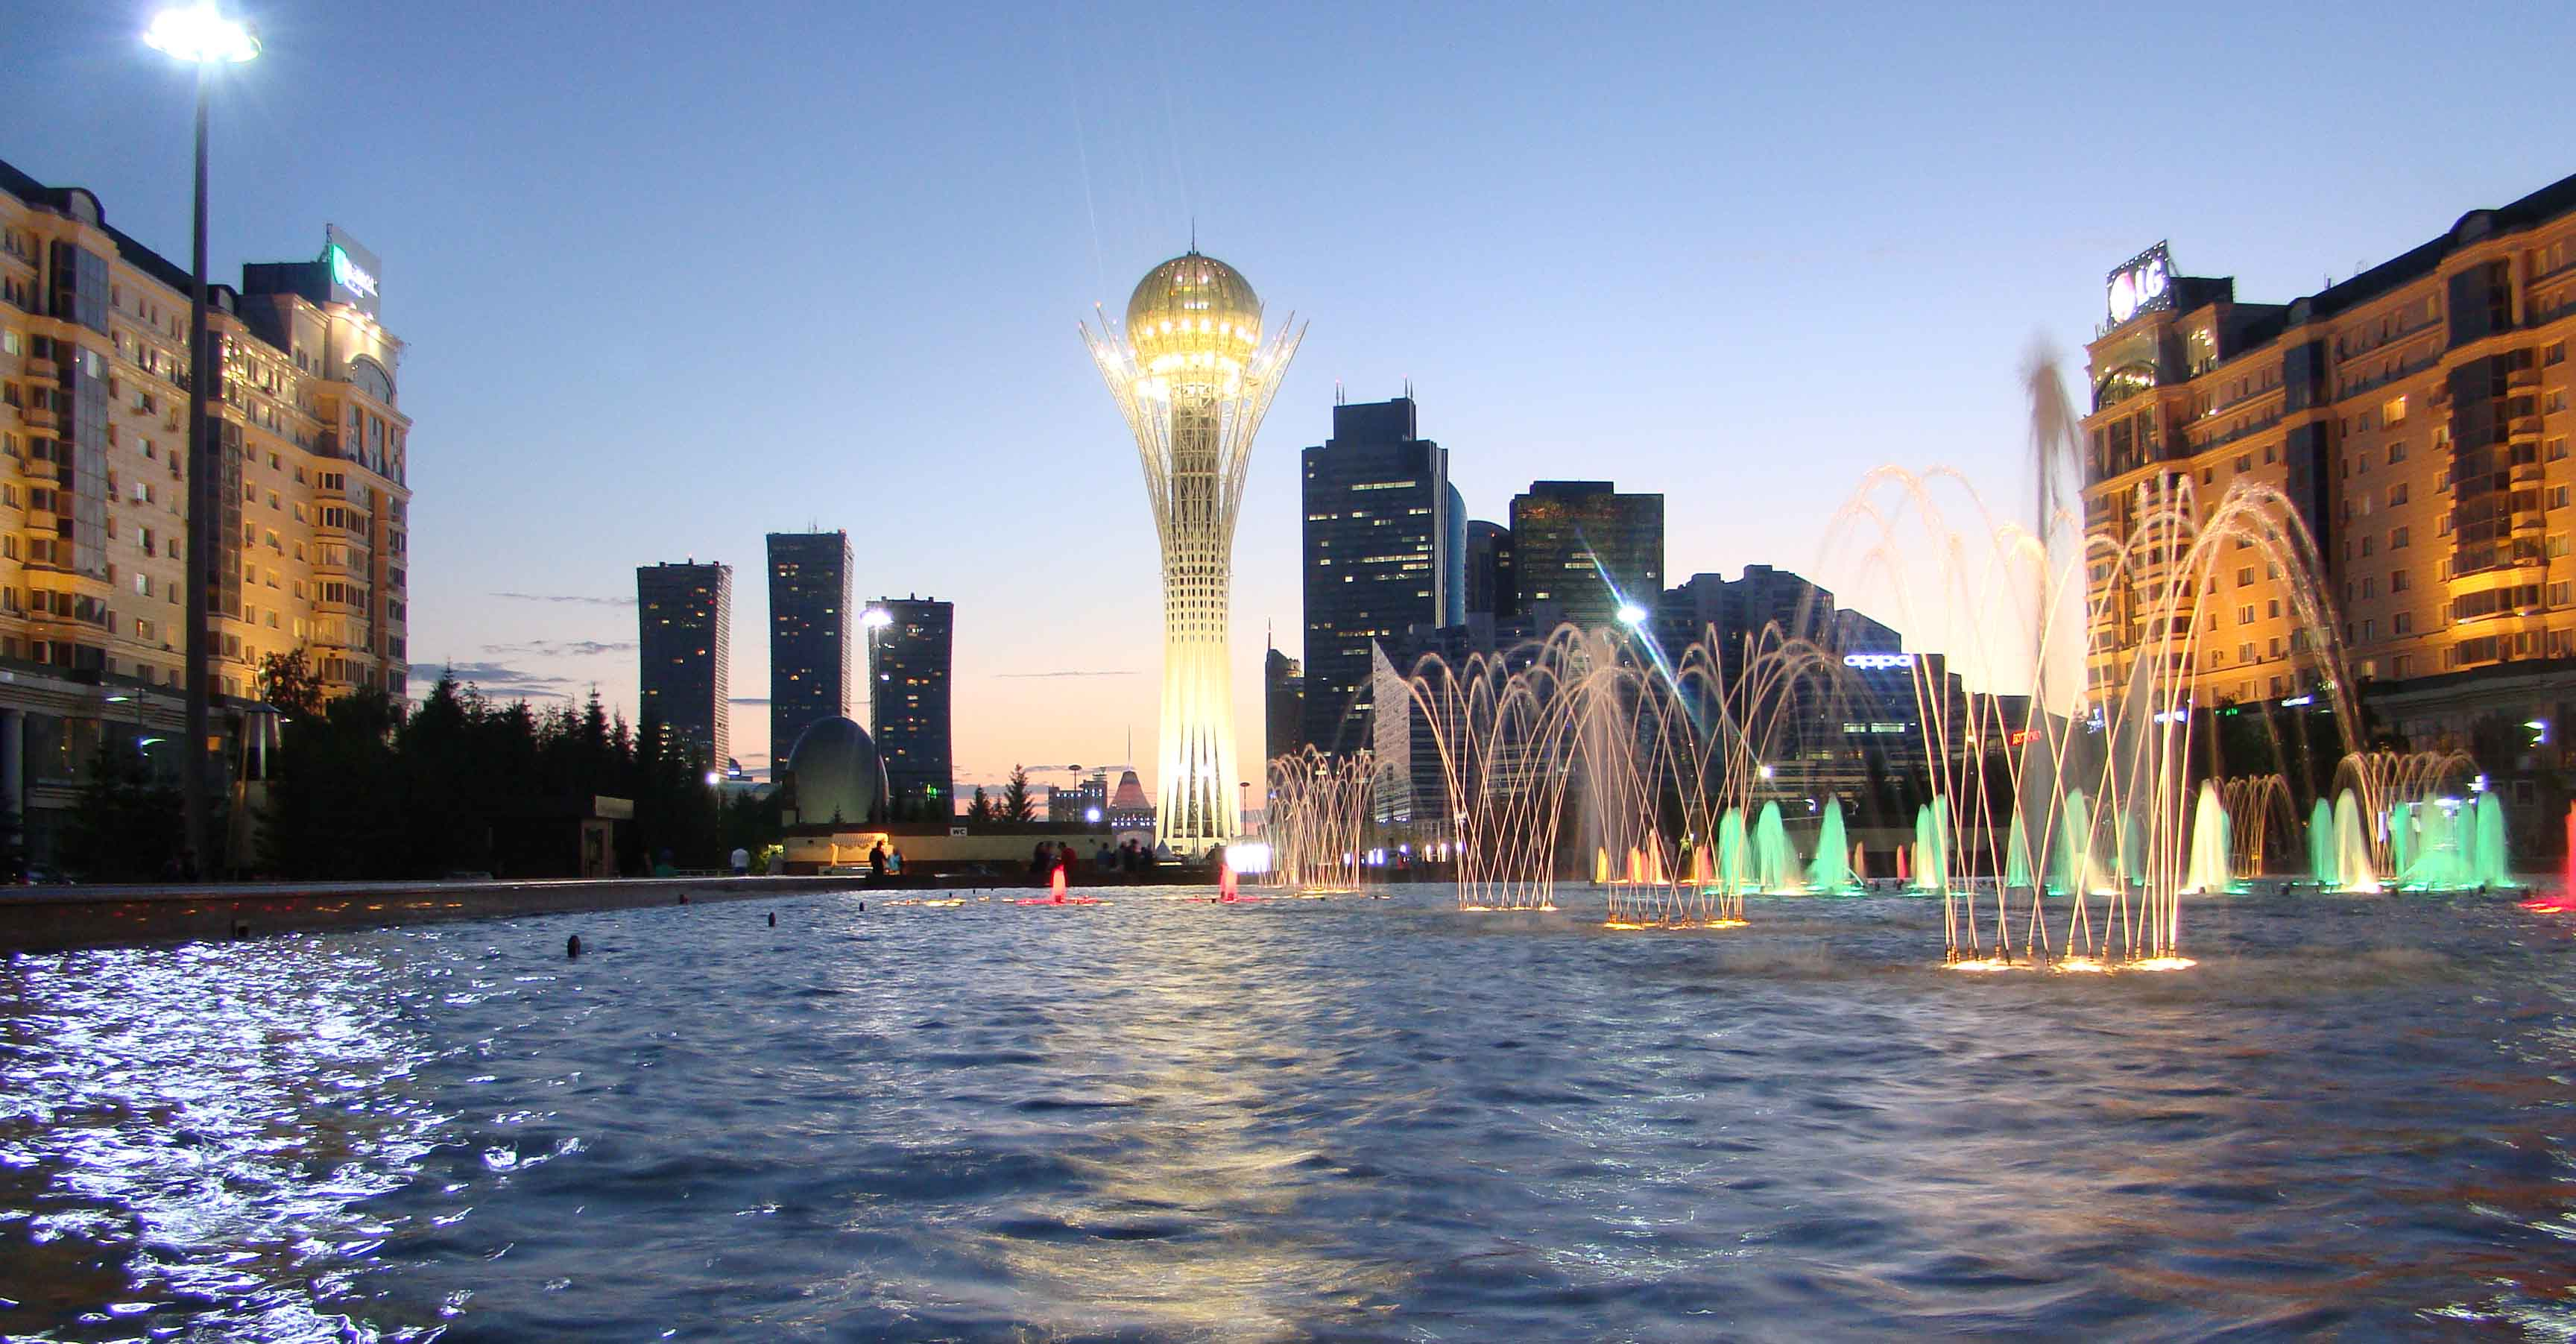 First yuan bond issued in Central Asia